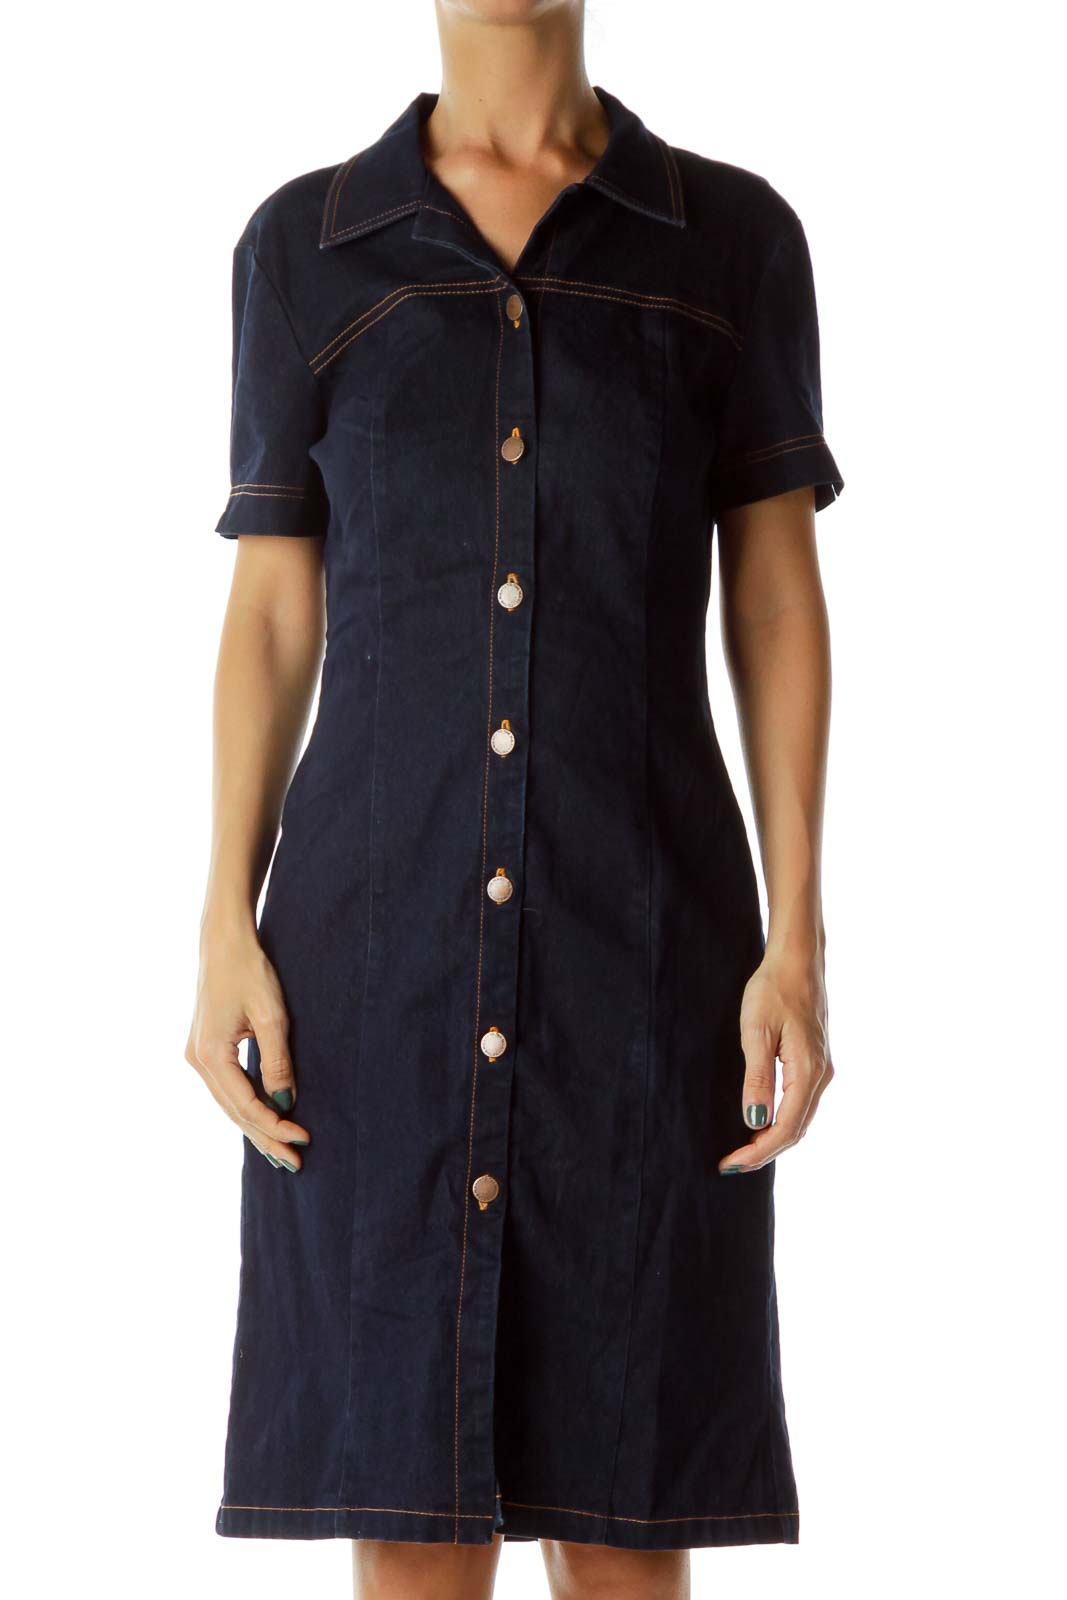 Navy Denim Buttoned Dress